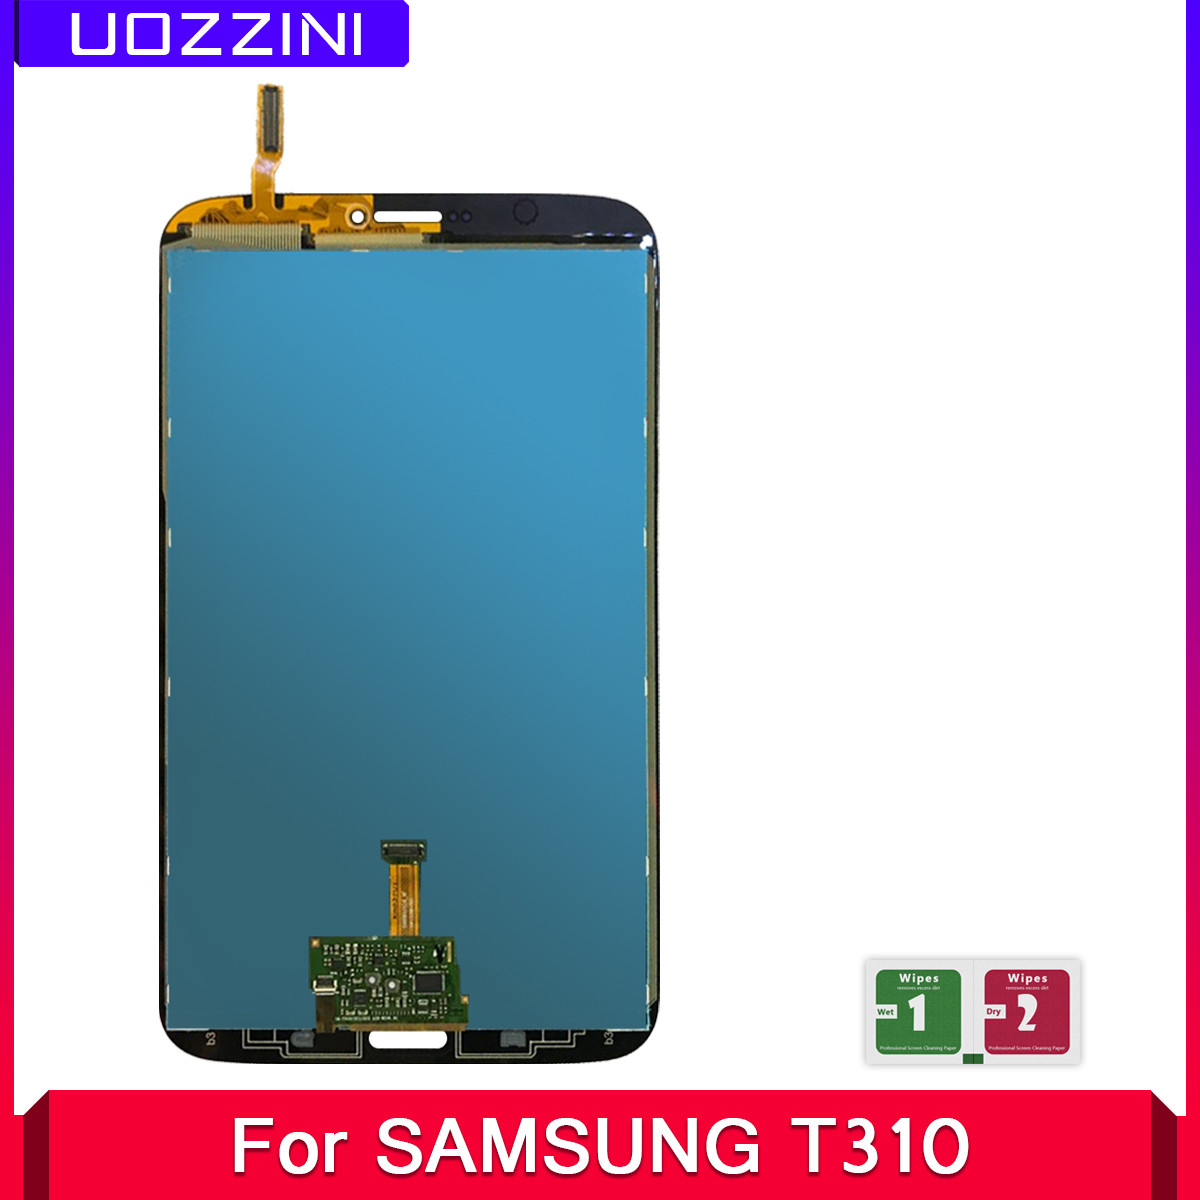 2 Pcs Lcds For <font><b>Samsung</b></font> Galaxy Tab 3 8.0 T310 <font><b>T311</b></font> SM-T310 SM-<font><b>T311</b></font> <font><b>LCD</b></font> Display Touch Screen Digitizer Panel Glass Assembly image